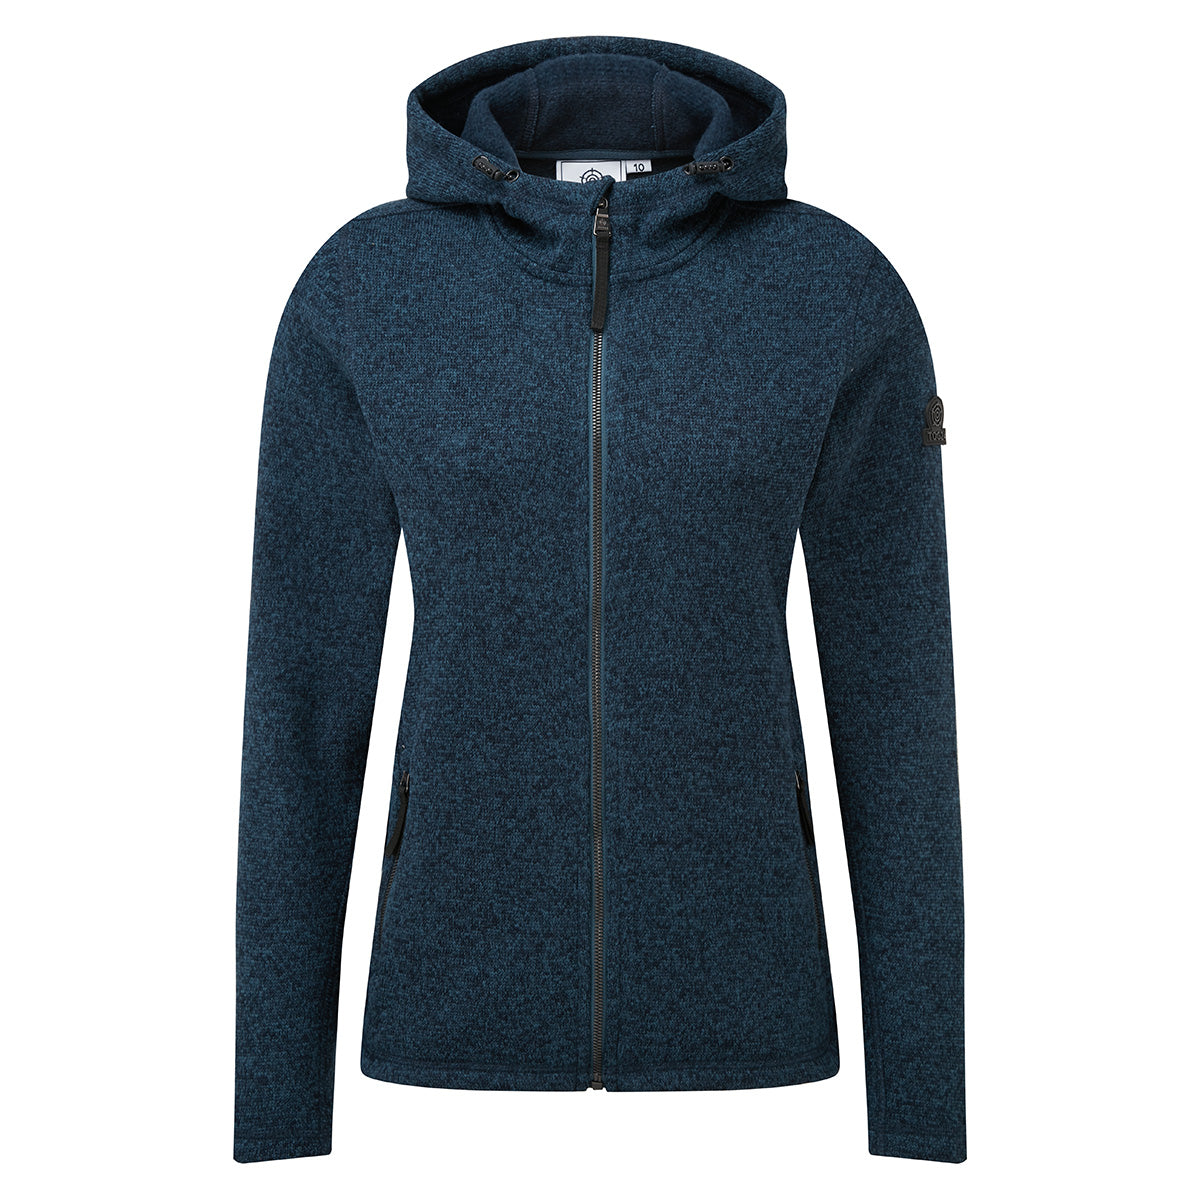 Cropton Womens Knitlook Fleece Jacket - Atlantic Blue Marl image 4